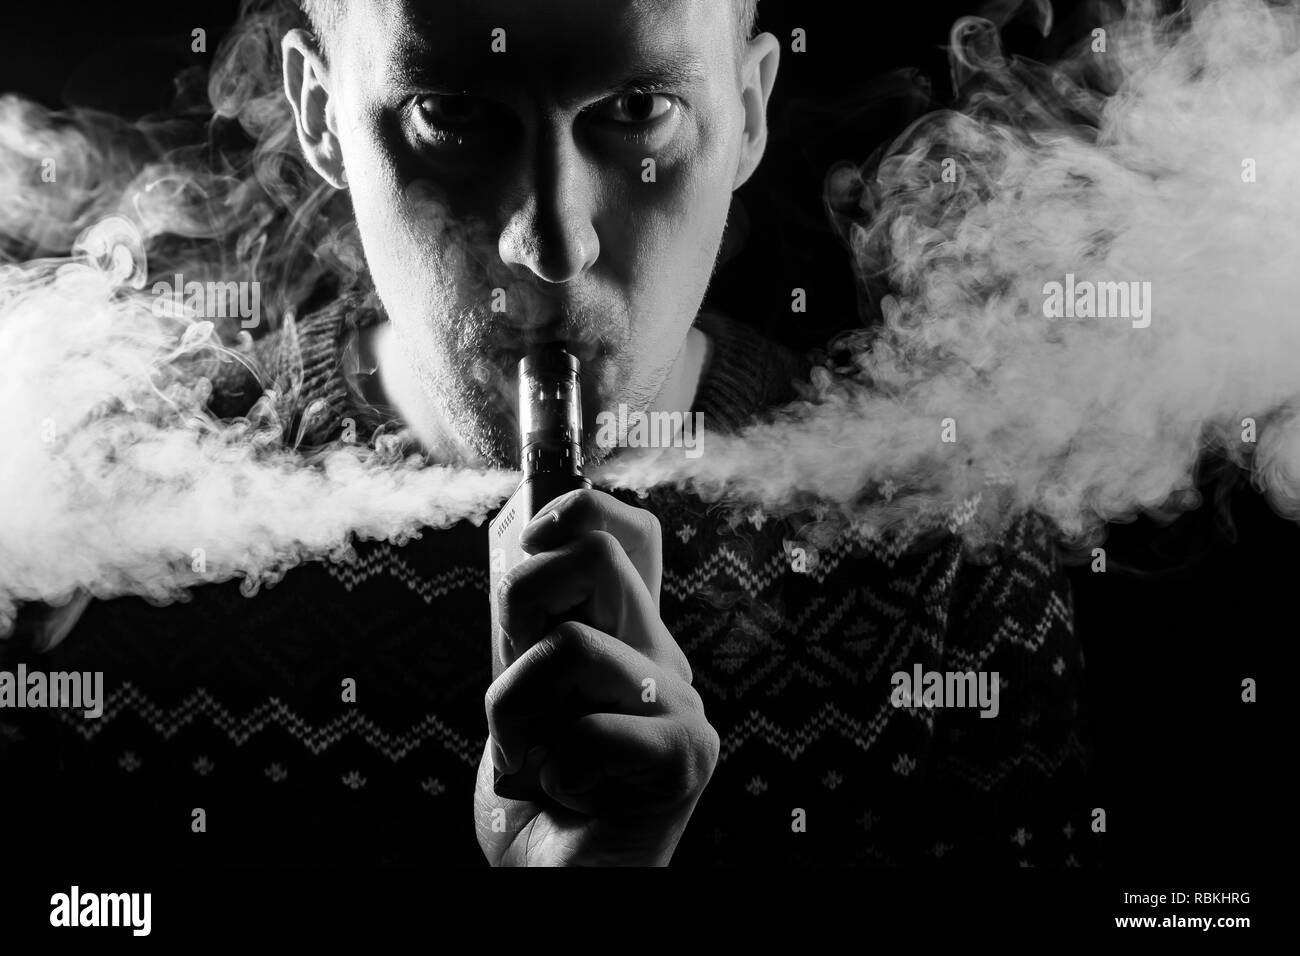 Portrait of a boy with a shadow on a serious face  with a colored backlight of monochrome smoking a vape and exhaling white smoke in different directi - Stock Image